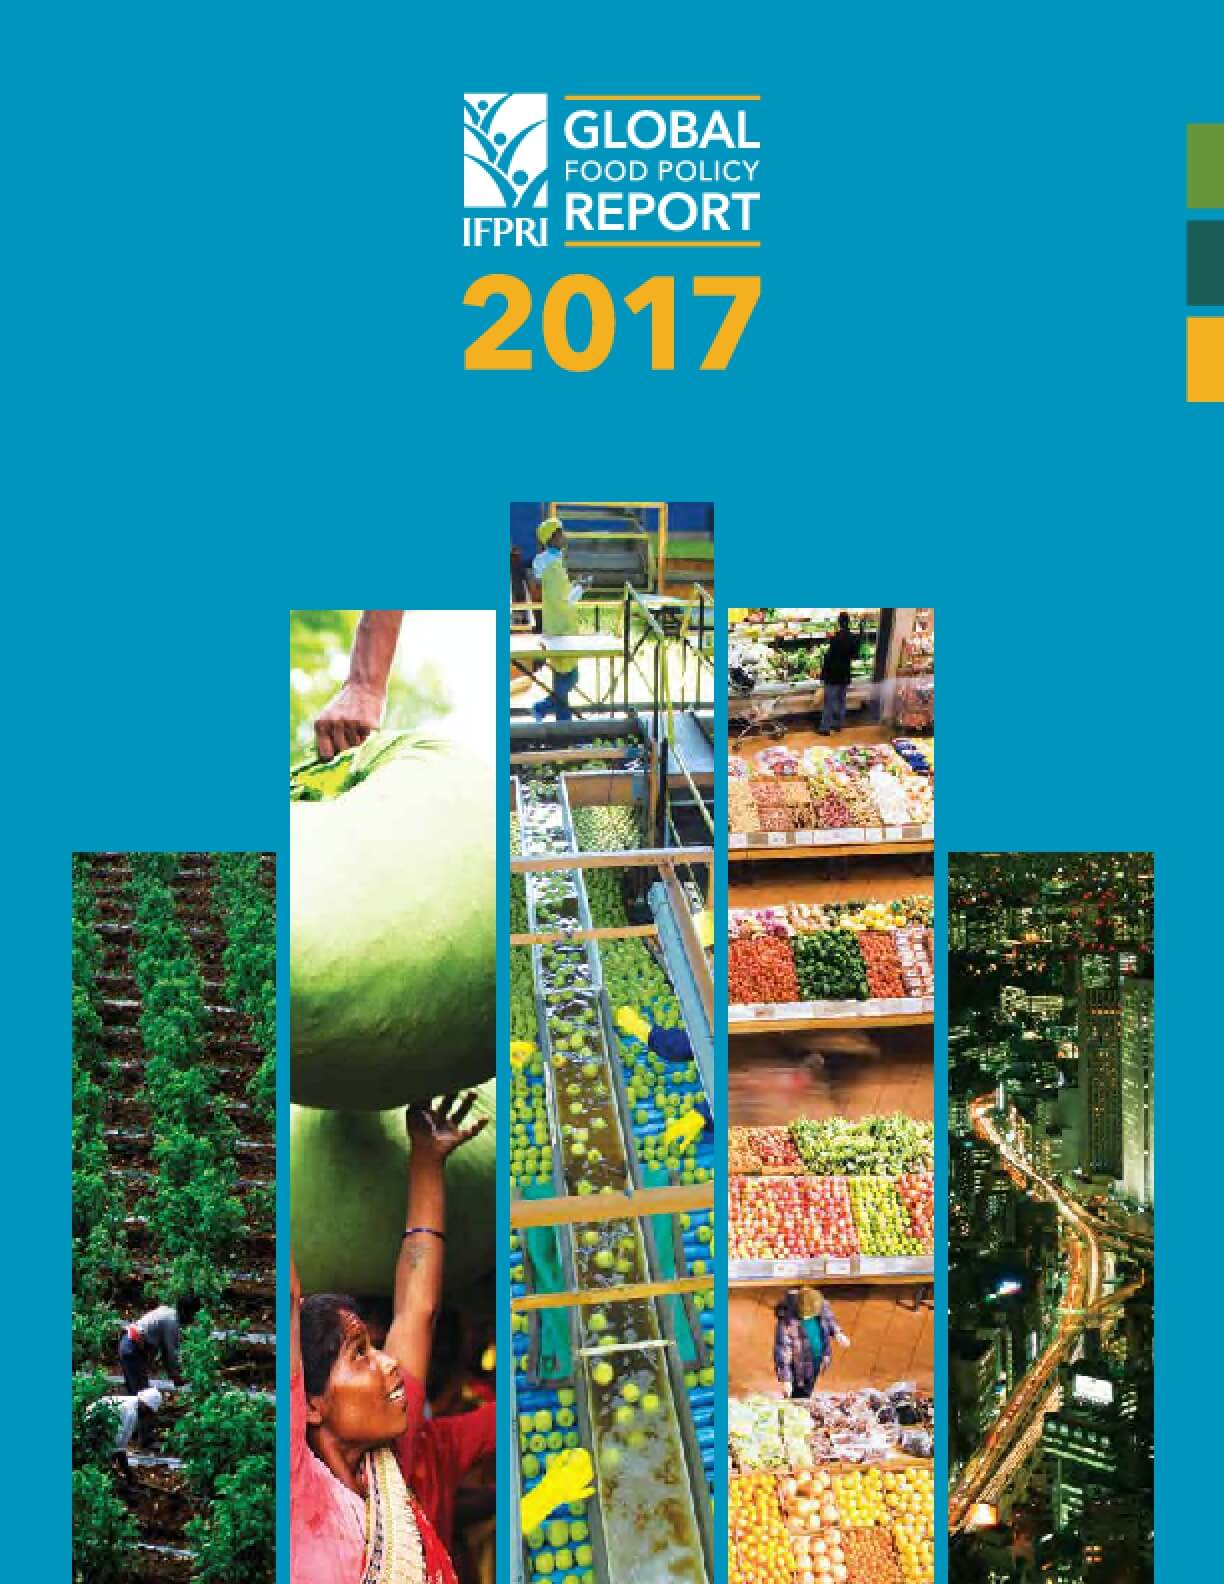 Global Food Policy Report 2017